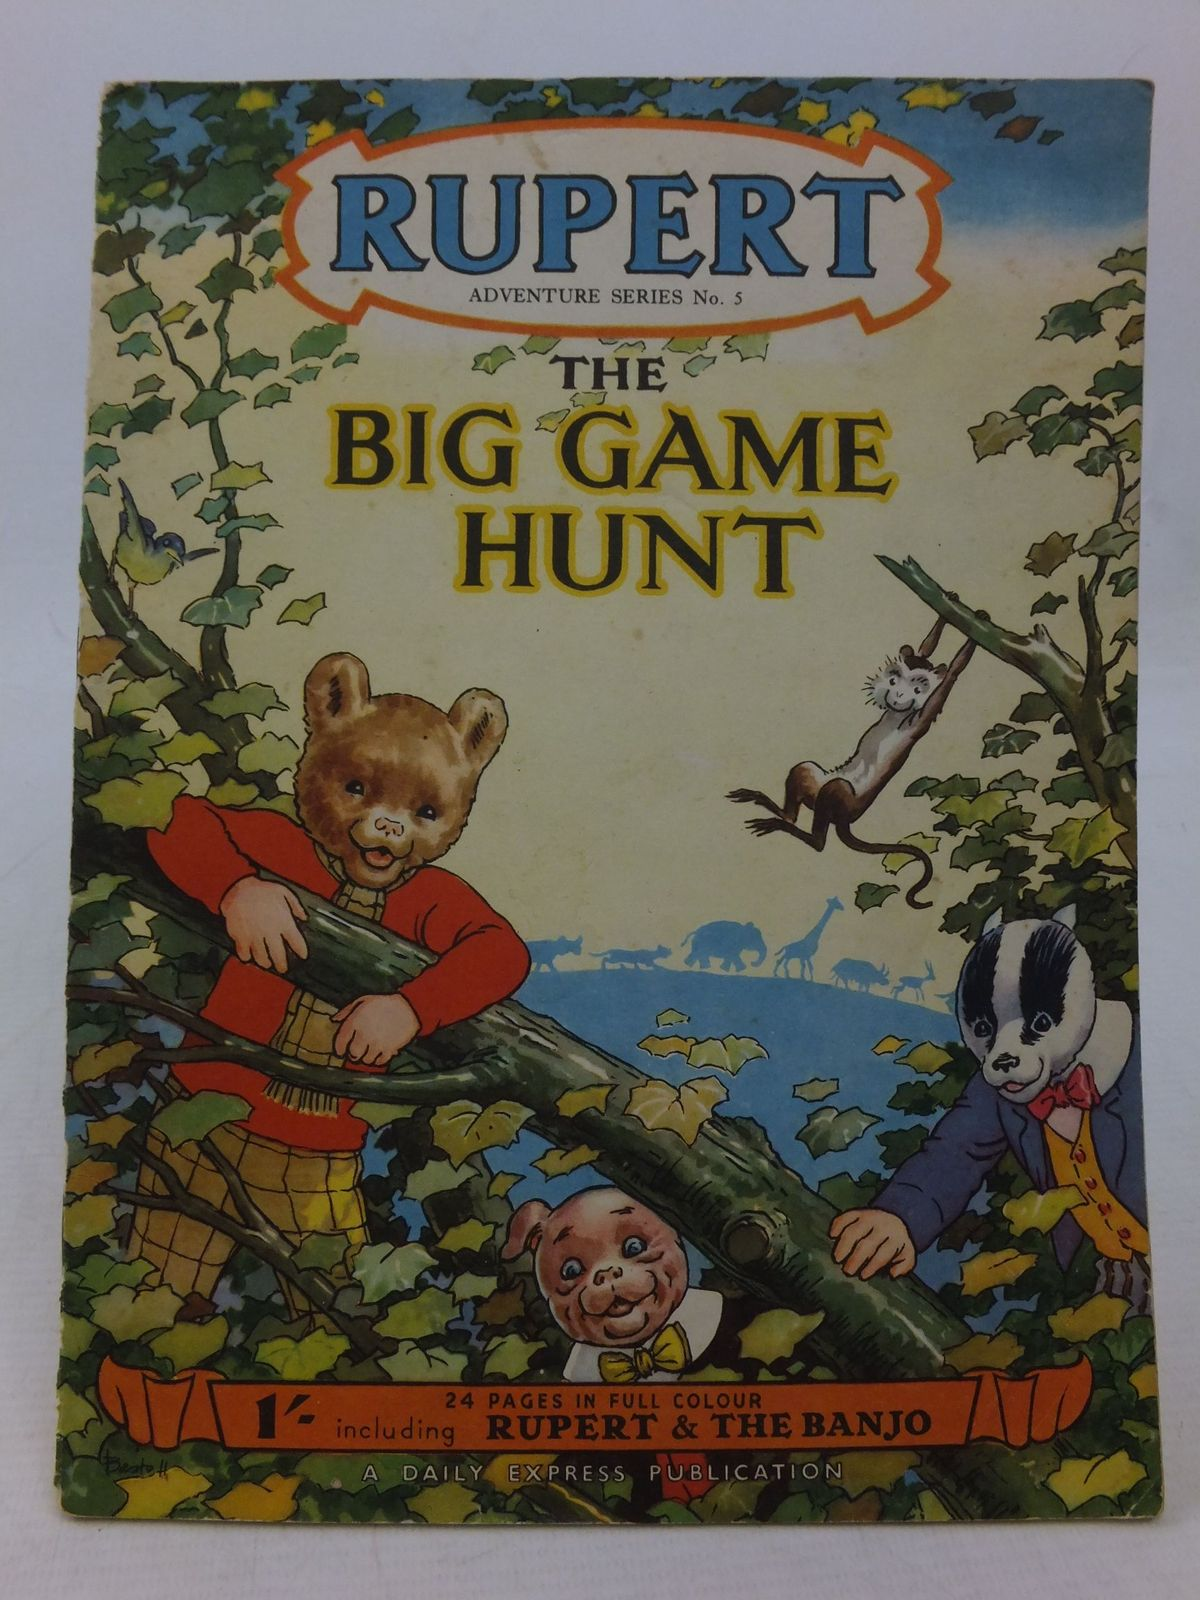 Photo of RUPERT ADVENTURE SERIES No. 5 - THE BIG GAME HUNT written by Bestall, Alfred illustrated by Bestall, Alfred published by Daily Express (STOCK CODE: 1109183)  for sale by Stella & Rose's Books